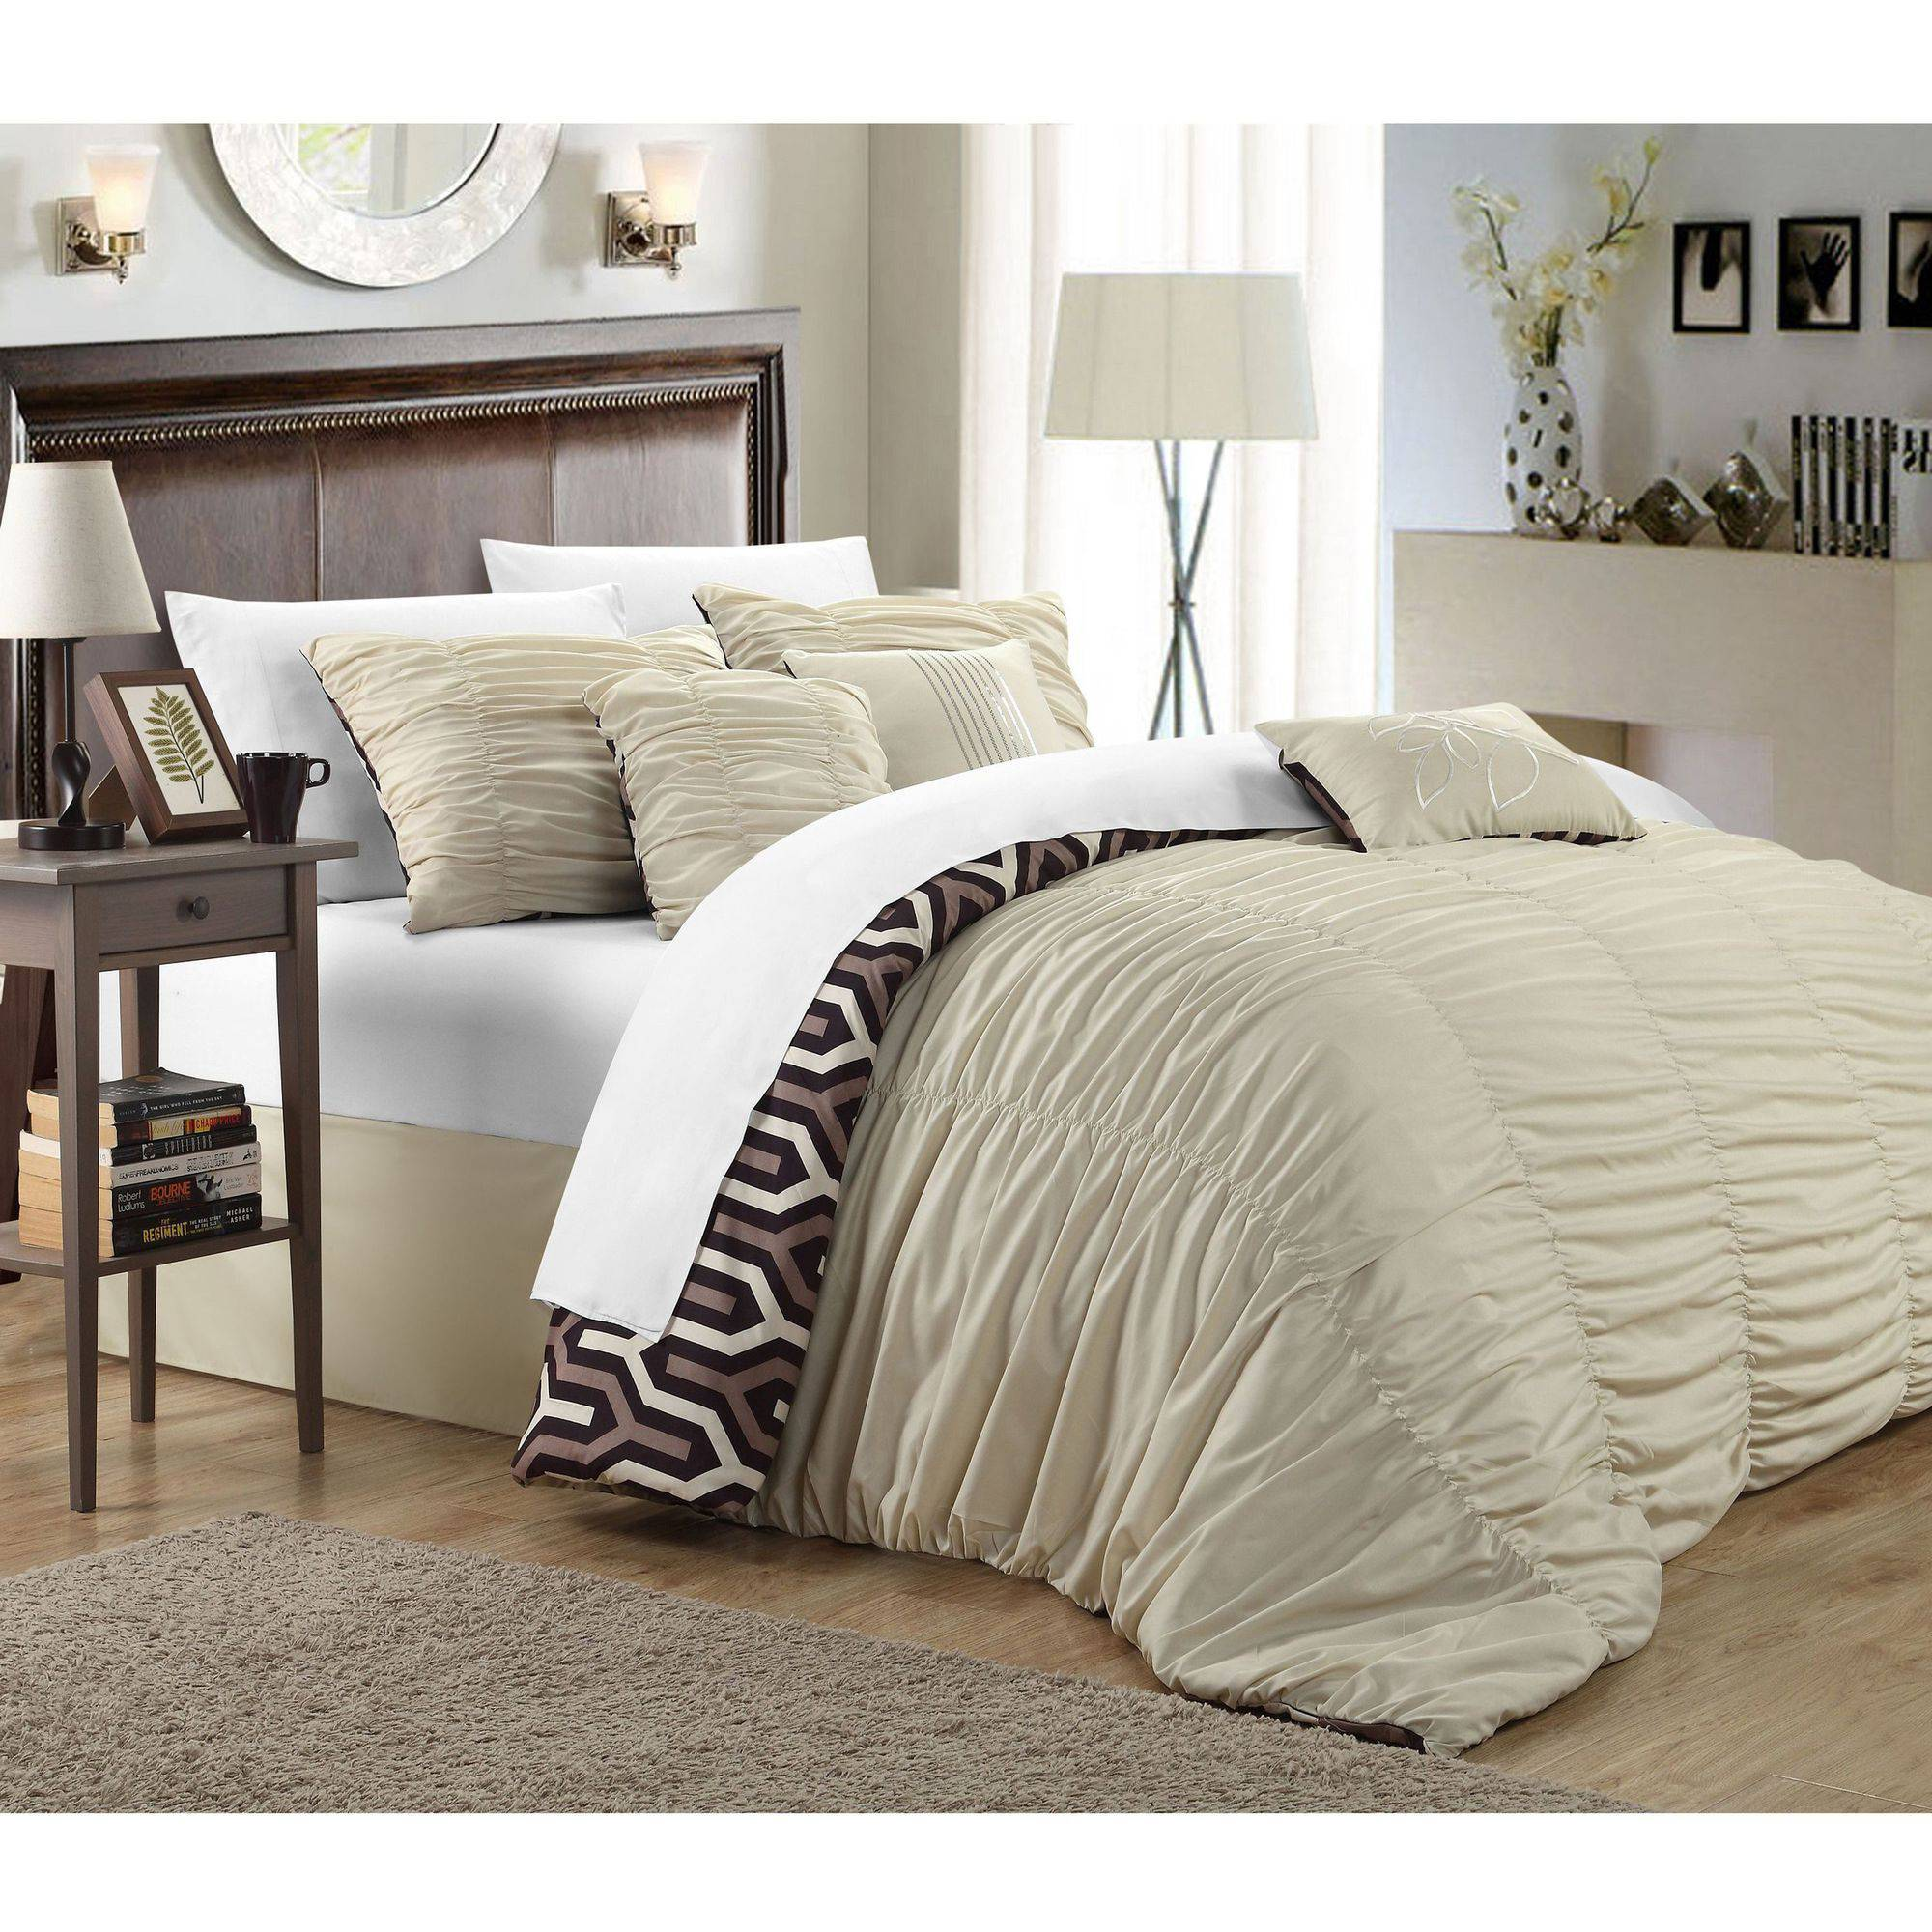 Chic Home Oversized Overfilled 7-Piece Lester Pleated Ruffled Reversible Creased Comforter Set